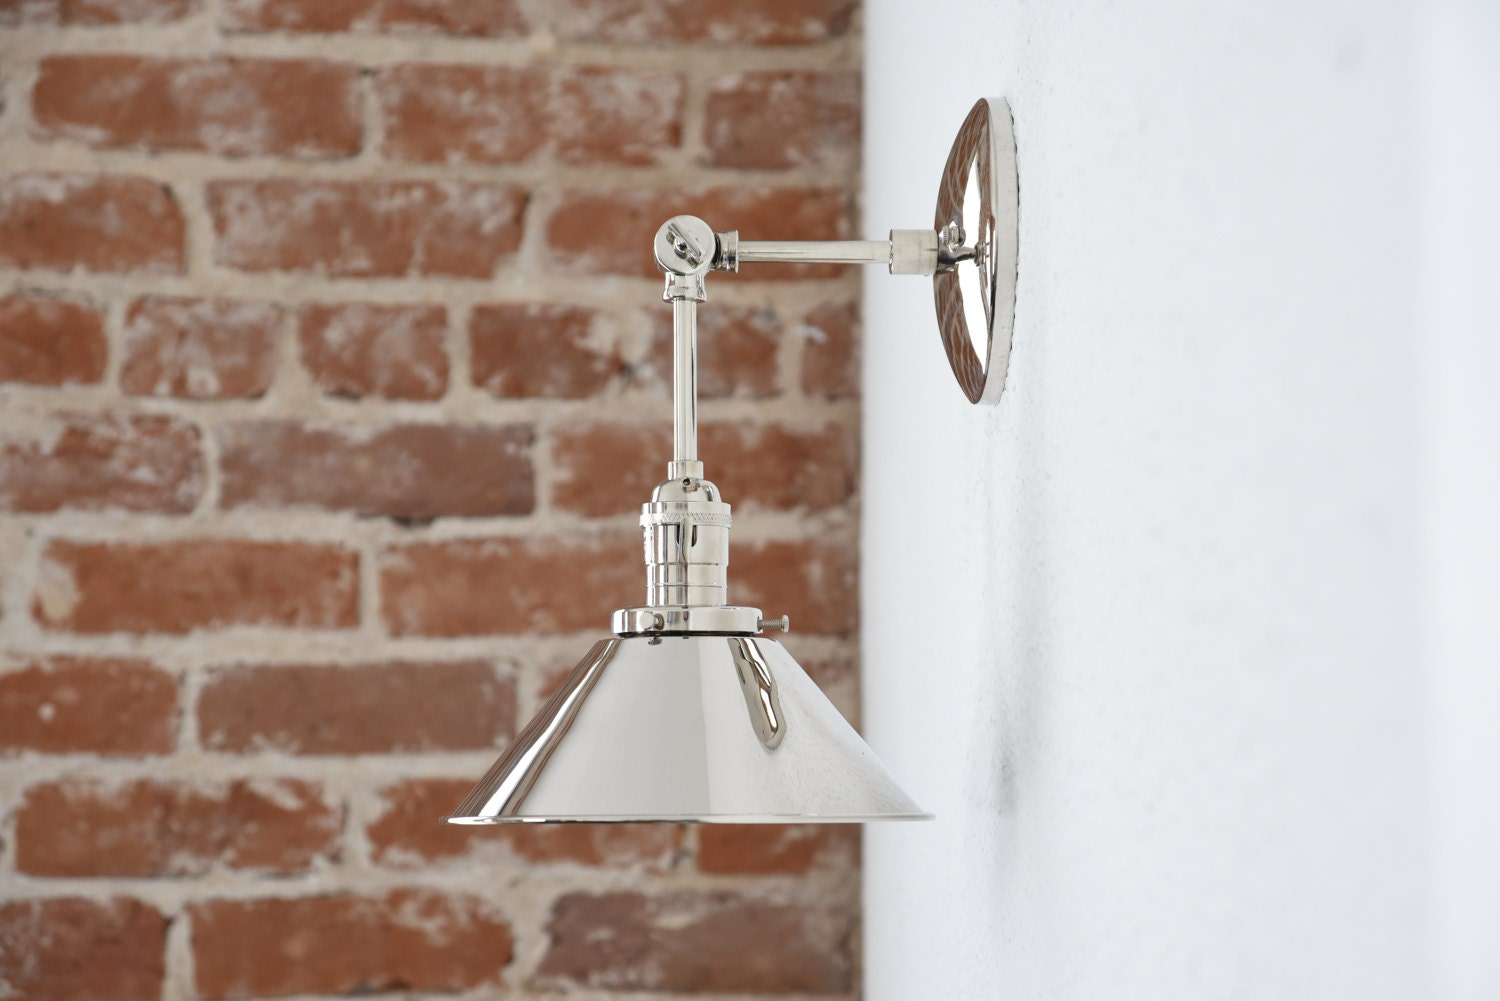 Modern Ridged Shade Bath Sconce 2 Light: Polished Nickel Wall Sconce Metal Shade Vanity Mid Century